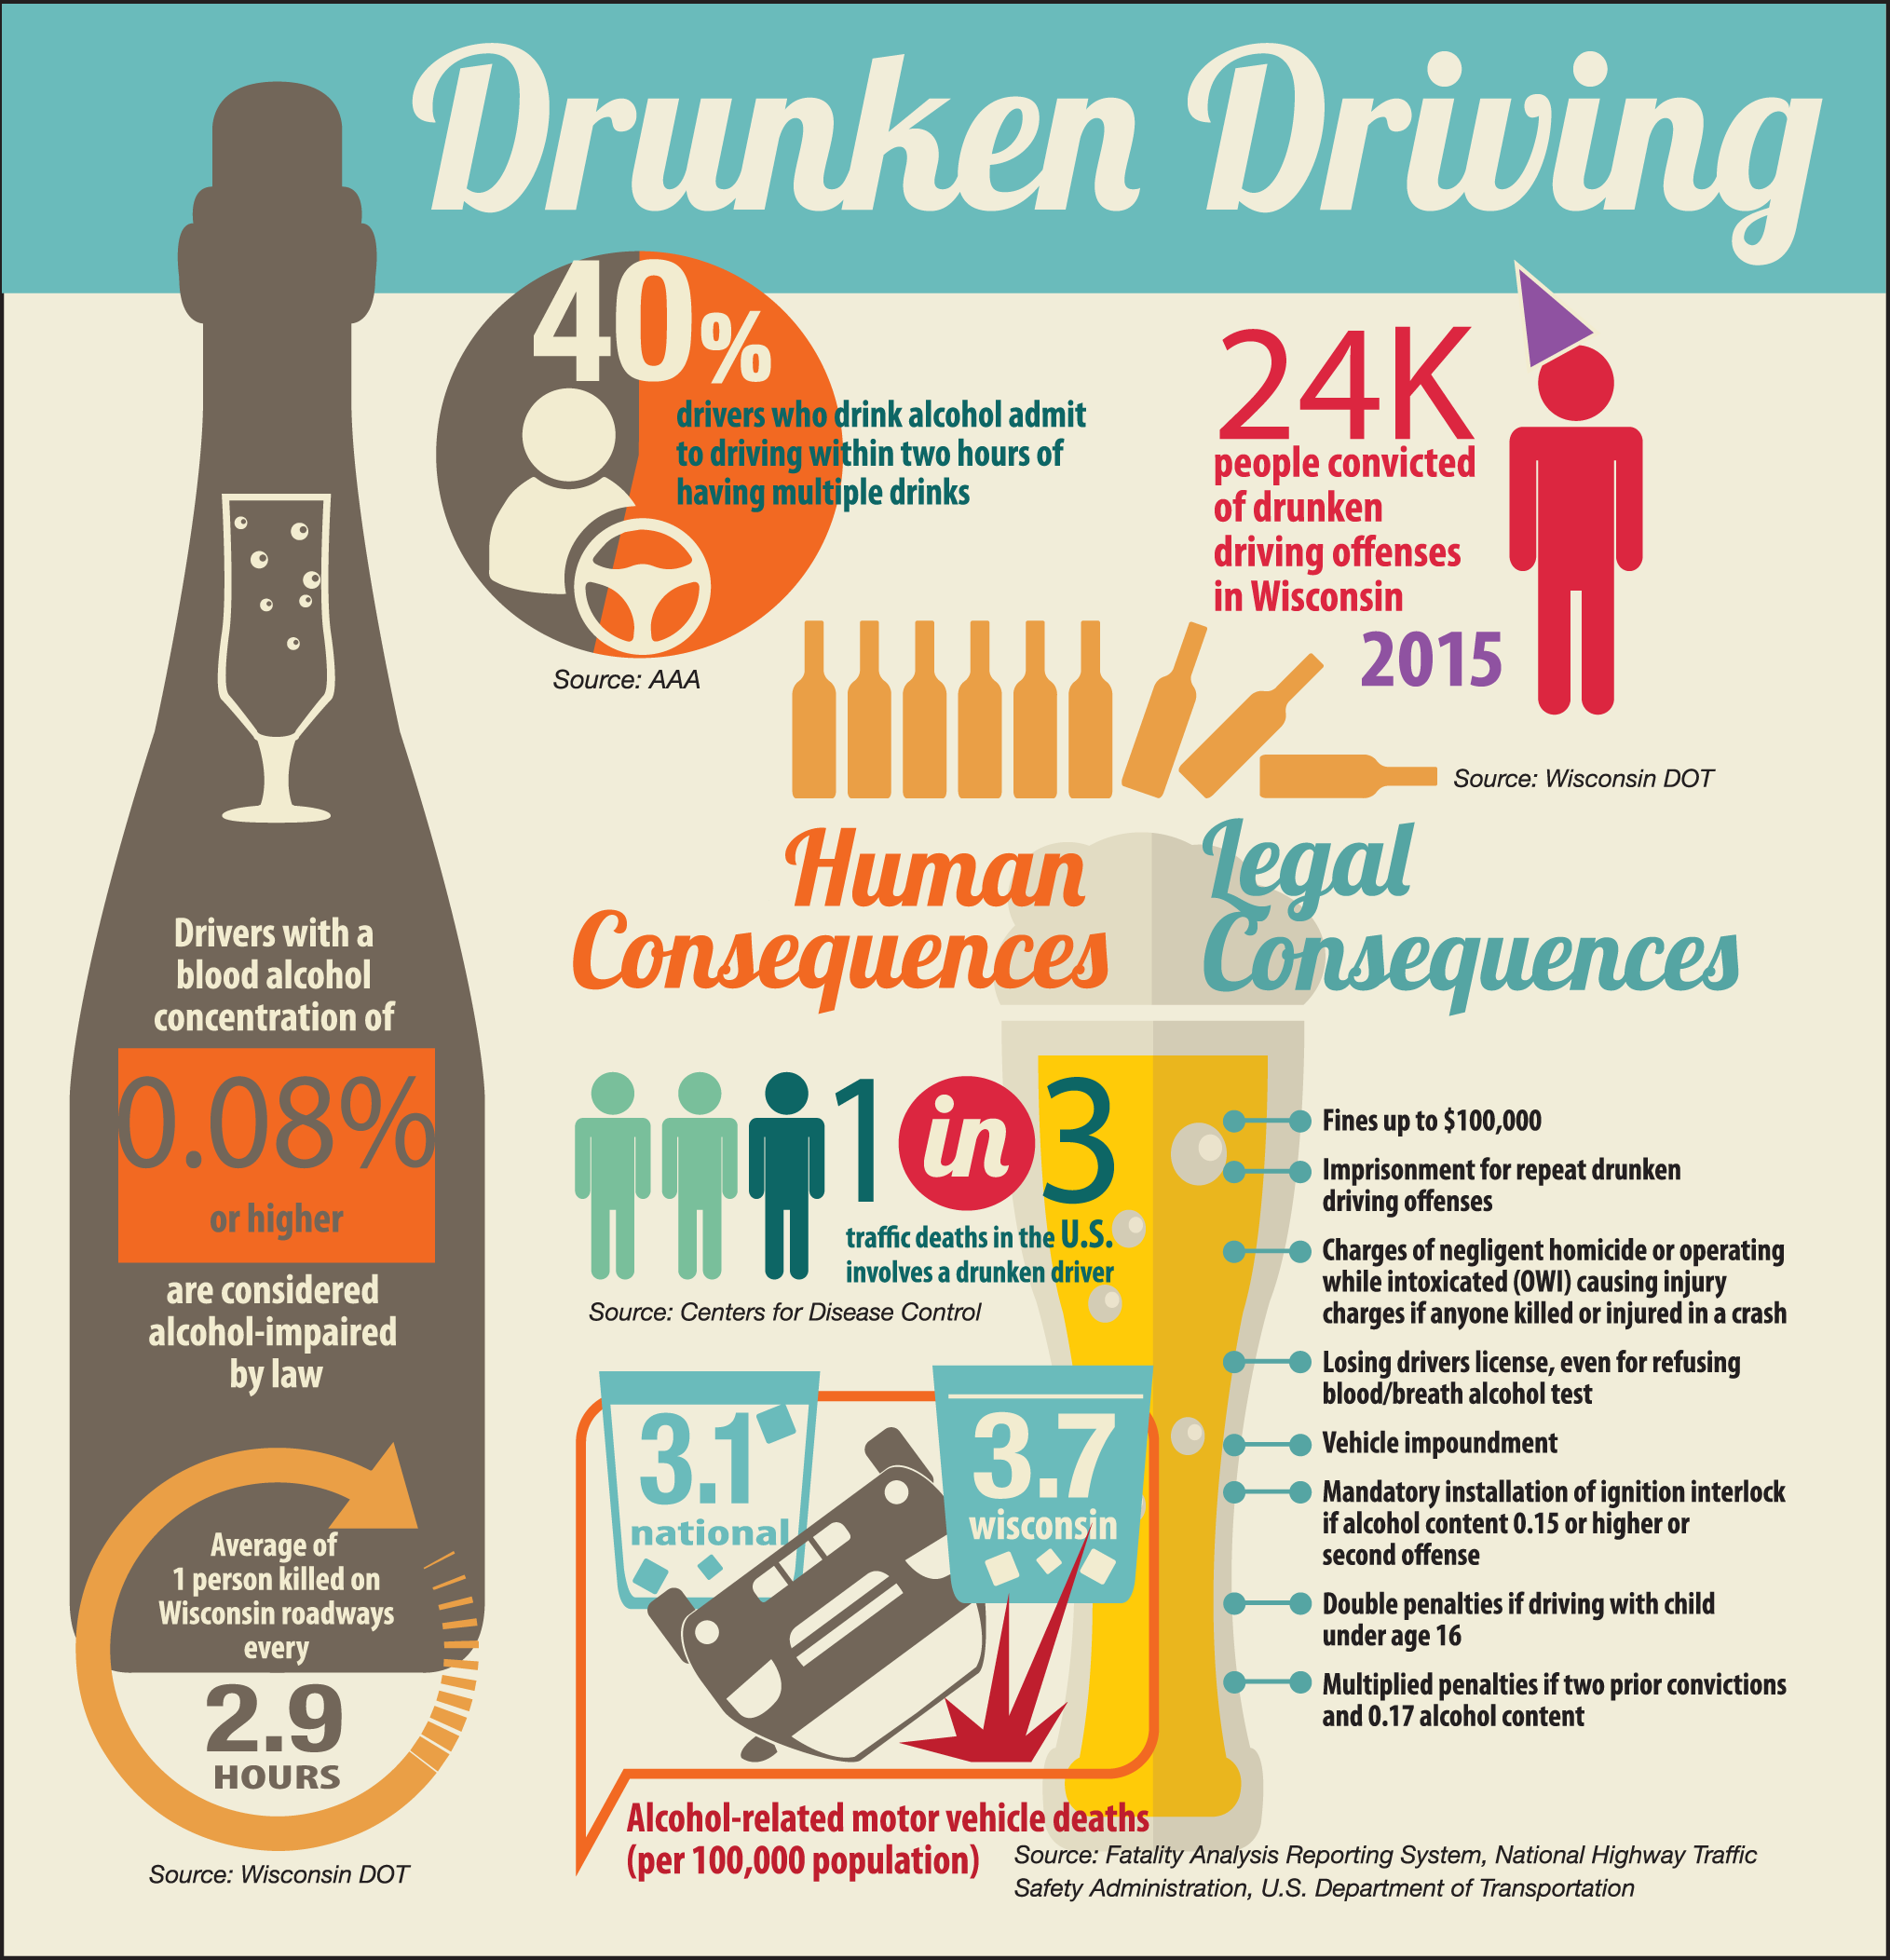 Season Sc Driving Collins This Holiday Johns Shows amp; Infographic Consequences - Drinking And Flaherty Of